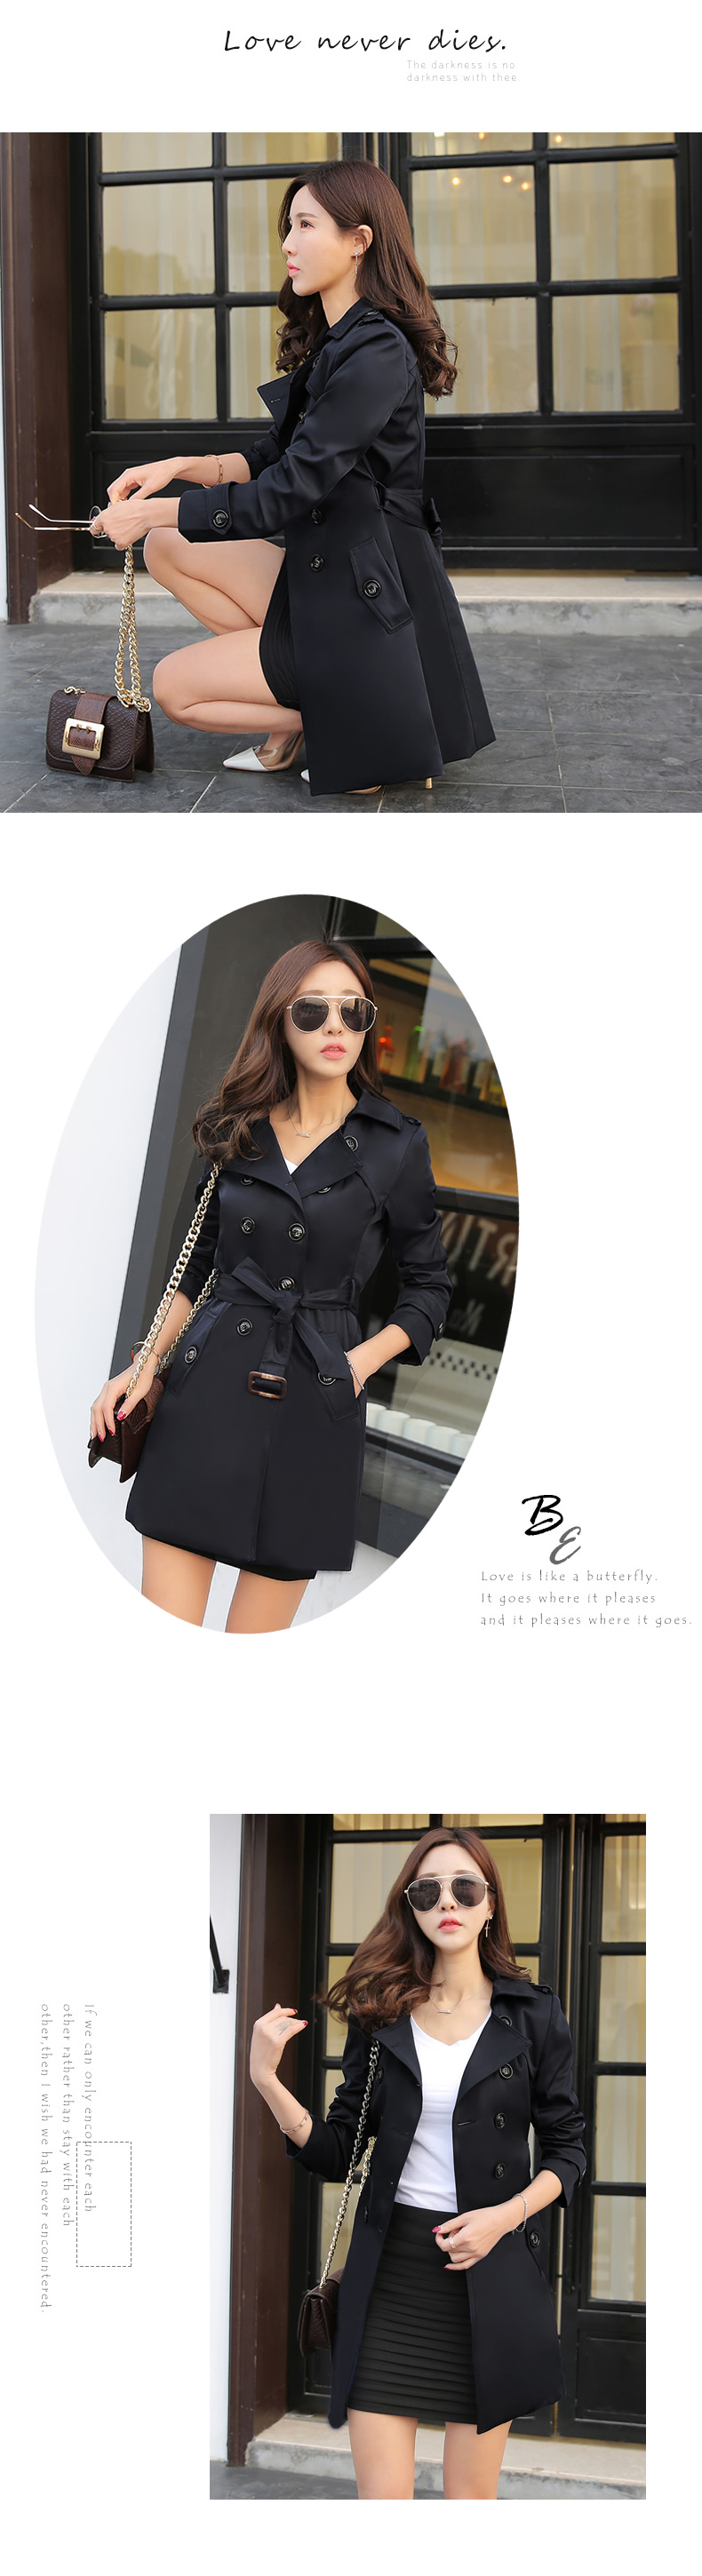 19 Autumn New Double Breasted Trench Coat Female High Quality Business Outerwear Woman Classic With Belt Long Trench Coat 10